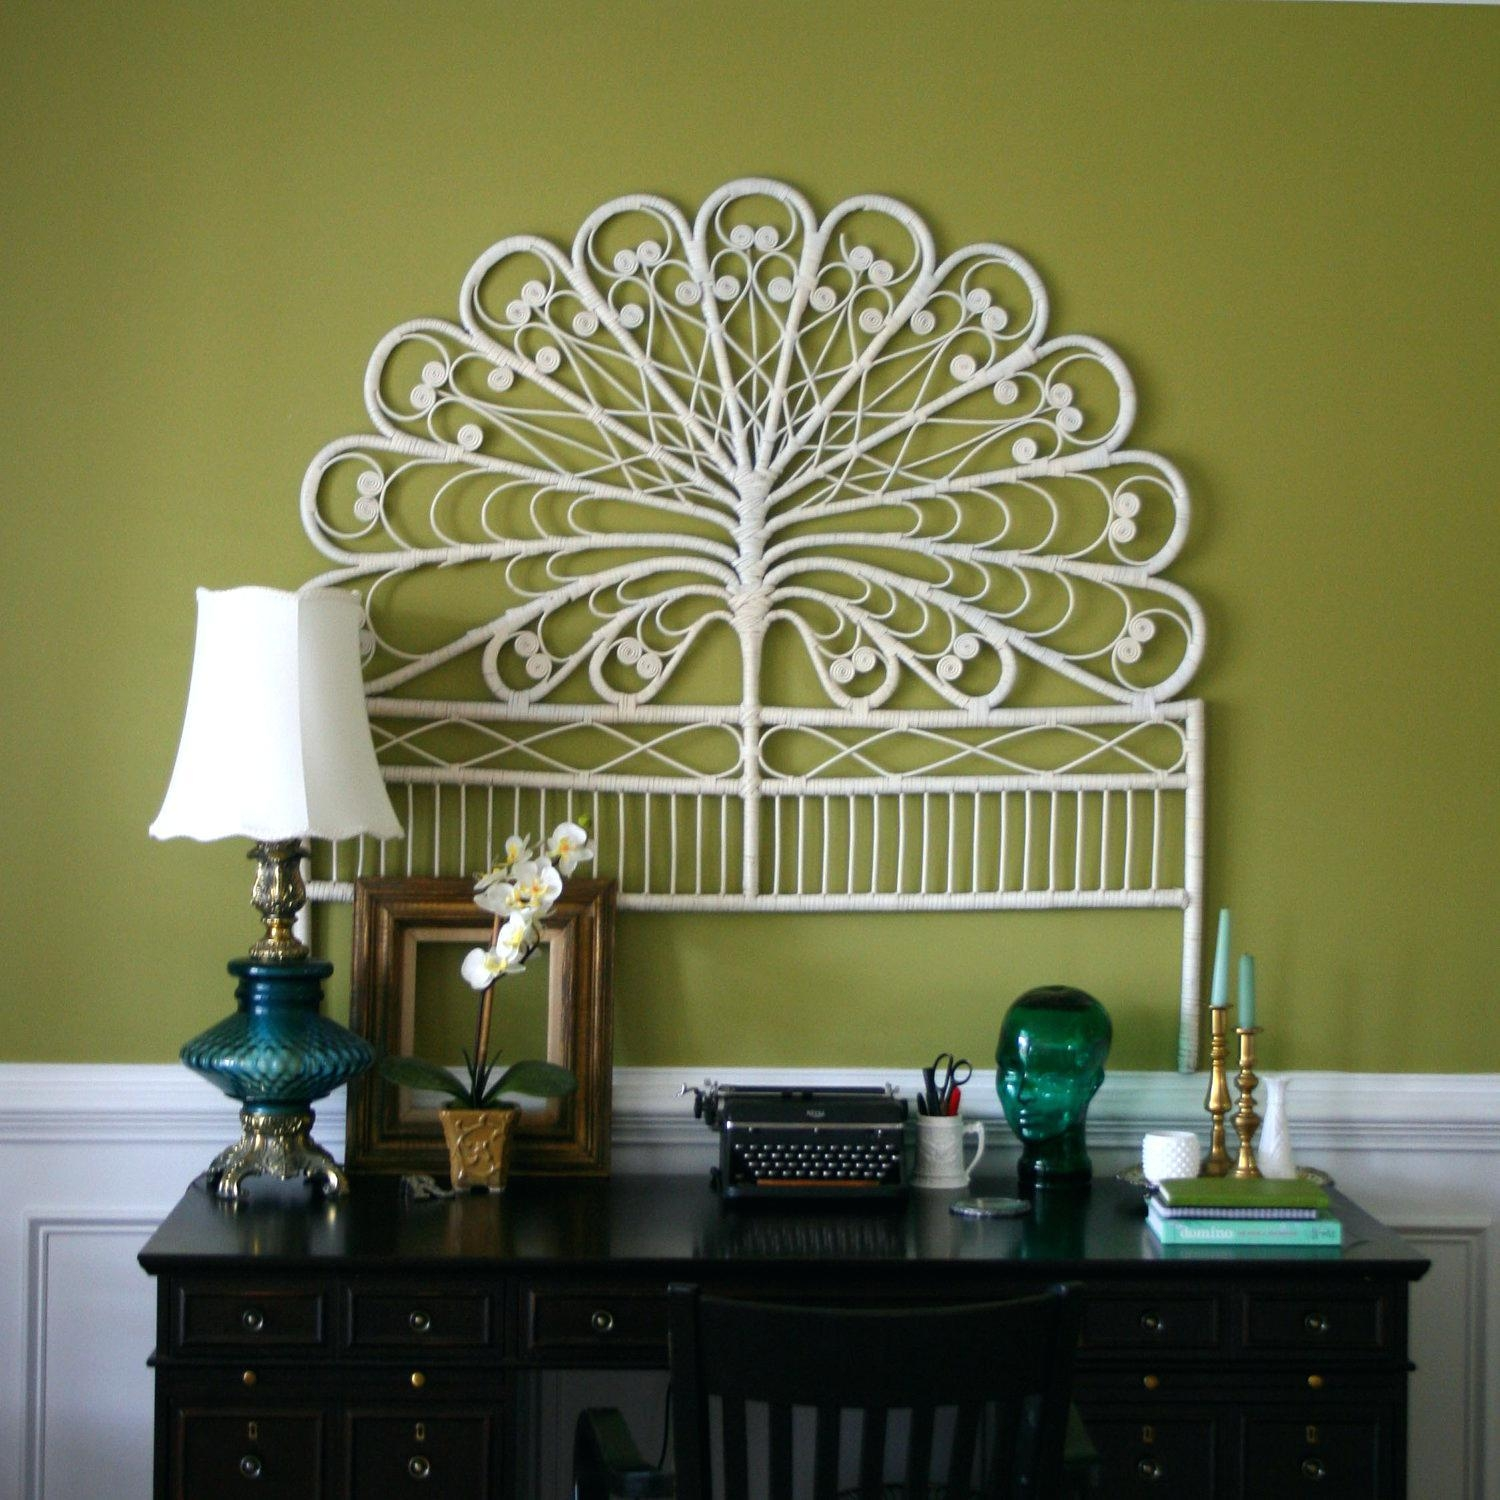 Wall Ideas : Wicker Wall Accessories Decorative Wicker Wall With Wicker Rattan Wall Art (Image 18 of 20)